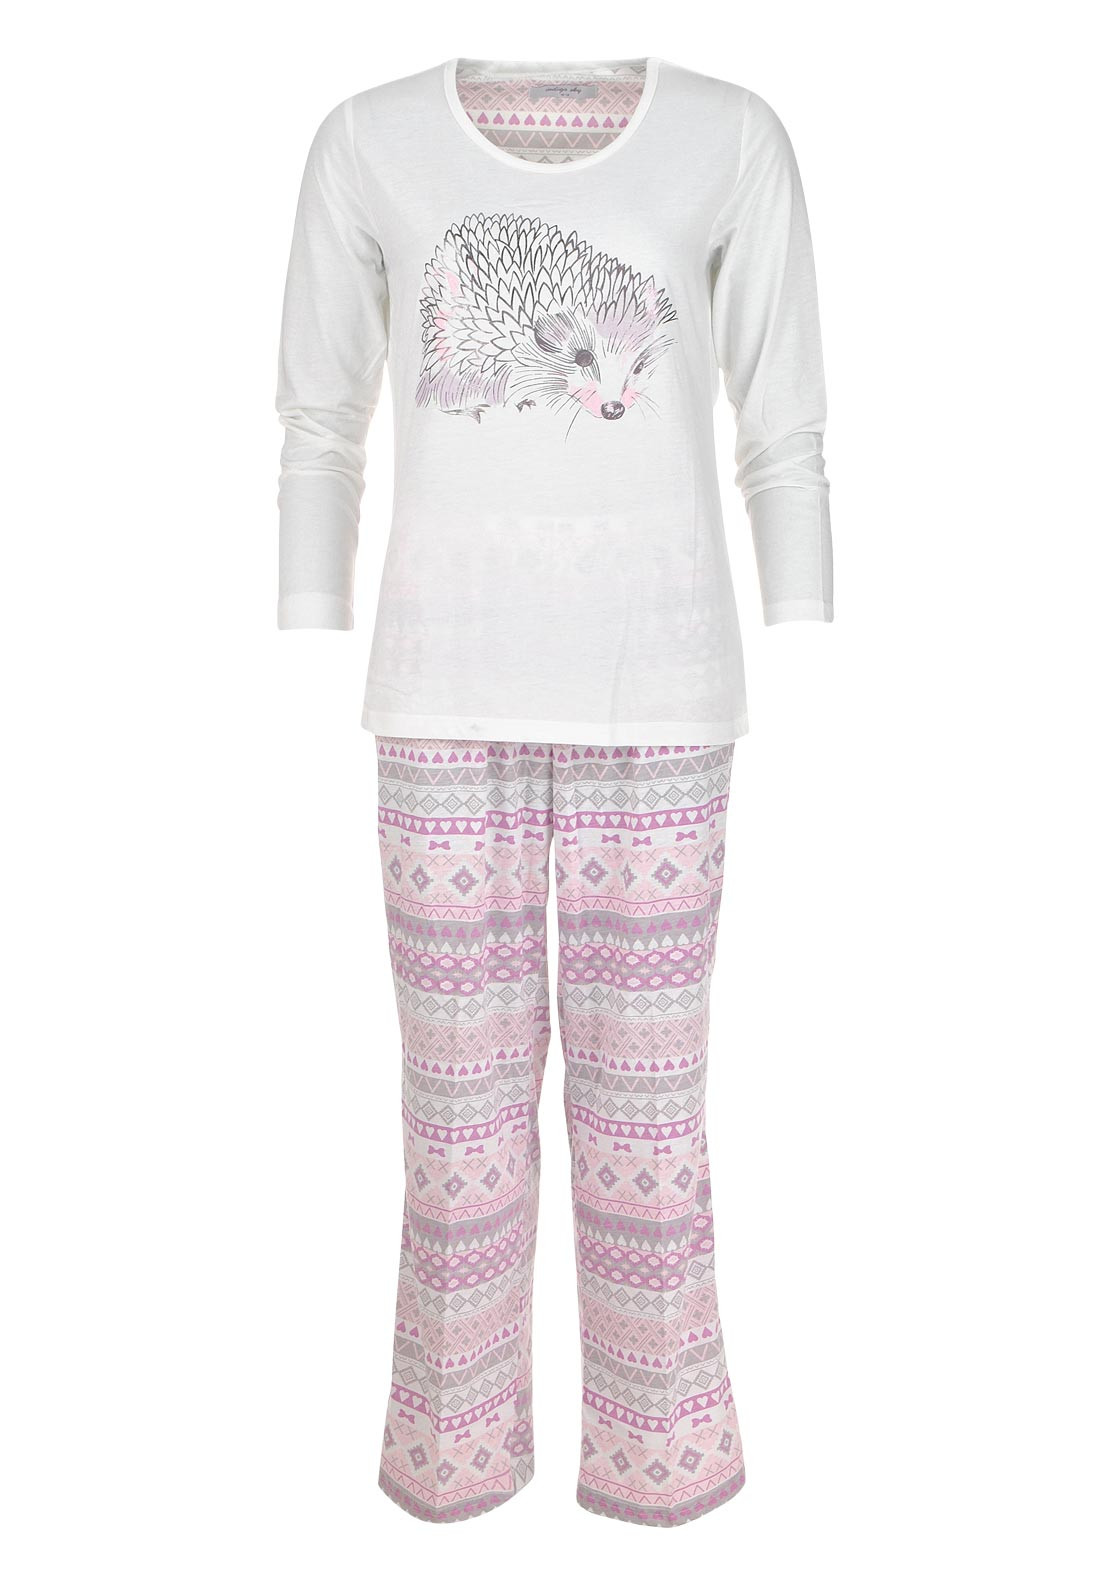 Marlon Hedgehog Print Pyjama Set, Multi-Coloured